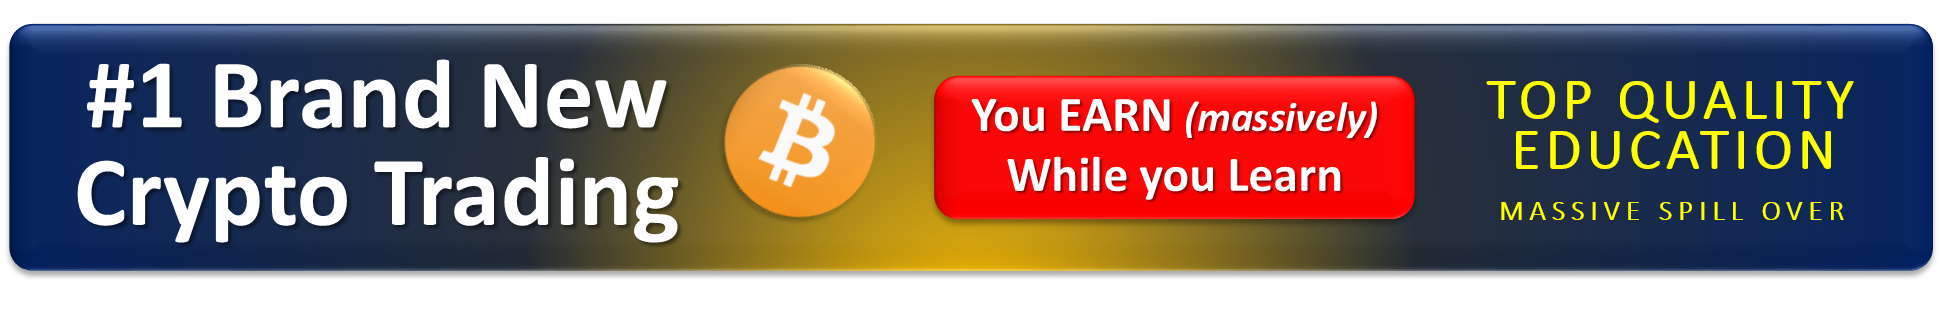 just out... Education in Crypto Trading. You Earn while You Learn. I know the Owners. Instant PayOut